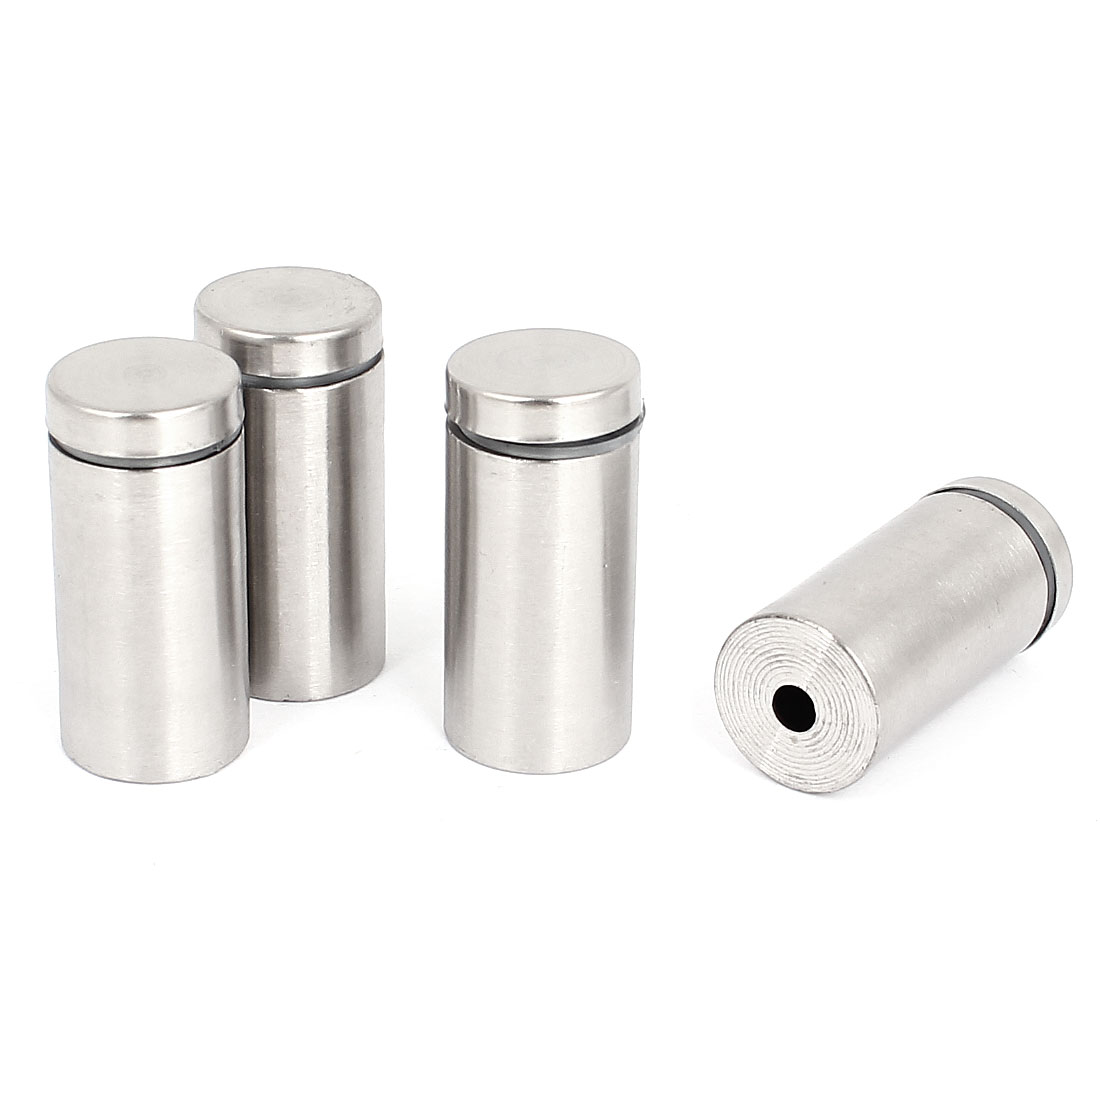 19mm x 40mm Stainless Steel Advertising Nails Frameless Glass Standoff 4 Pcs